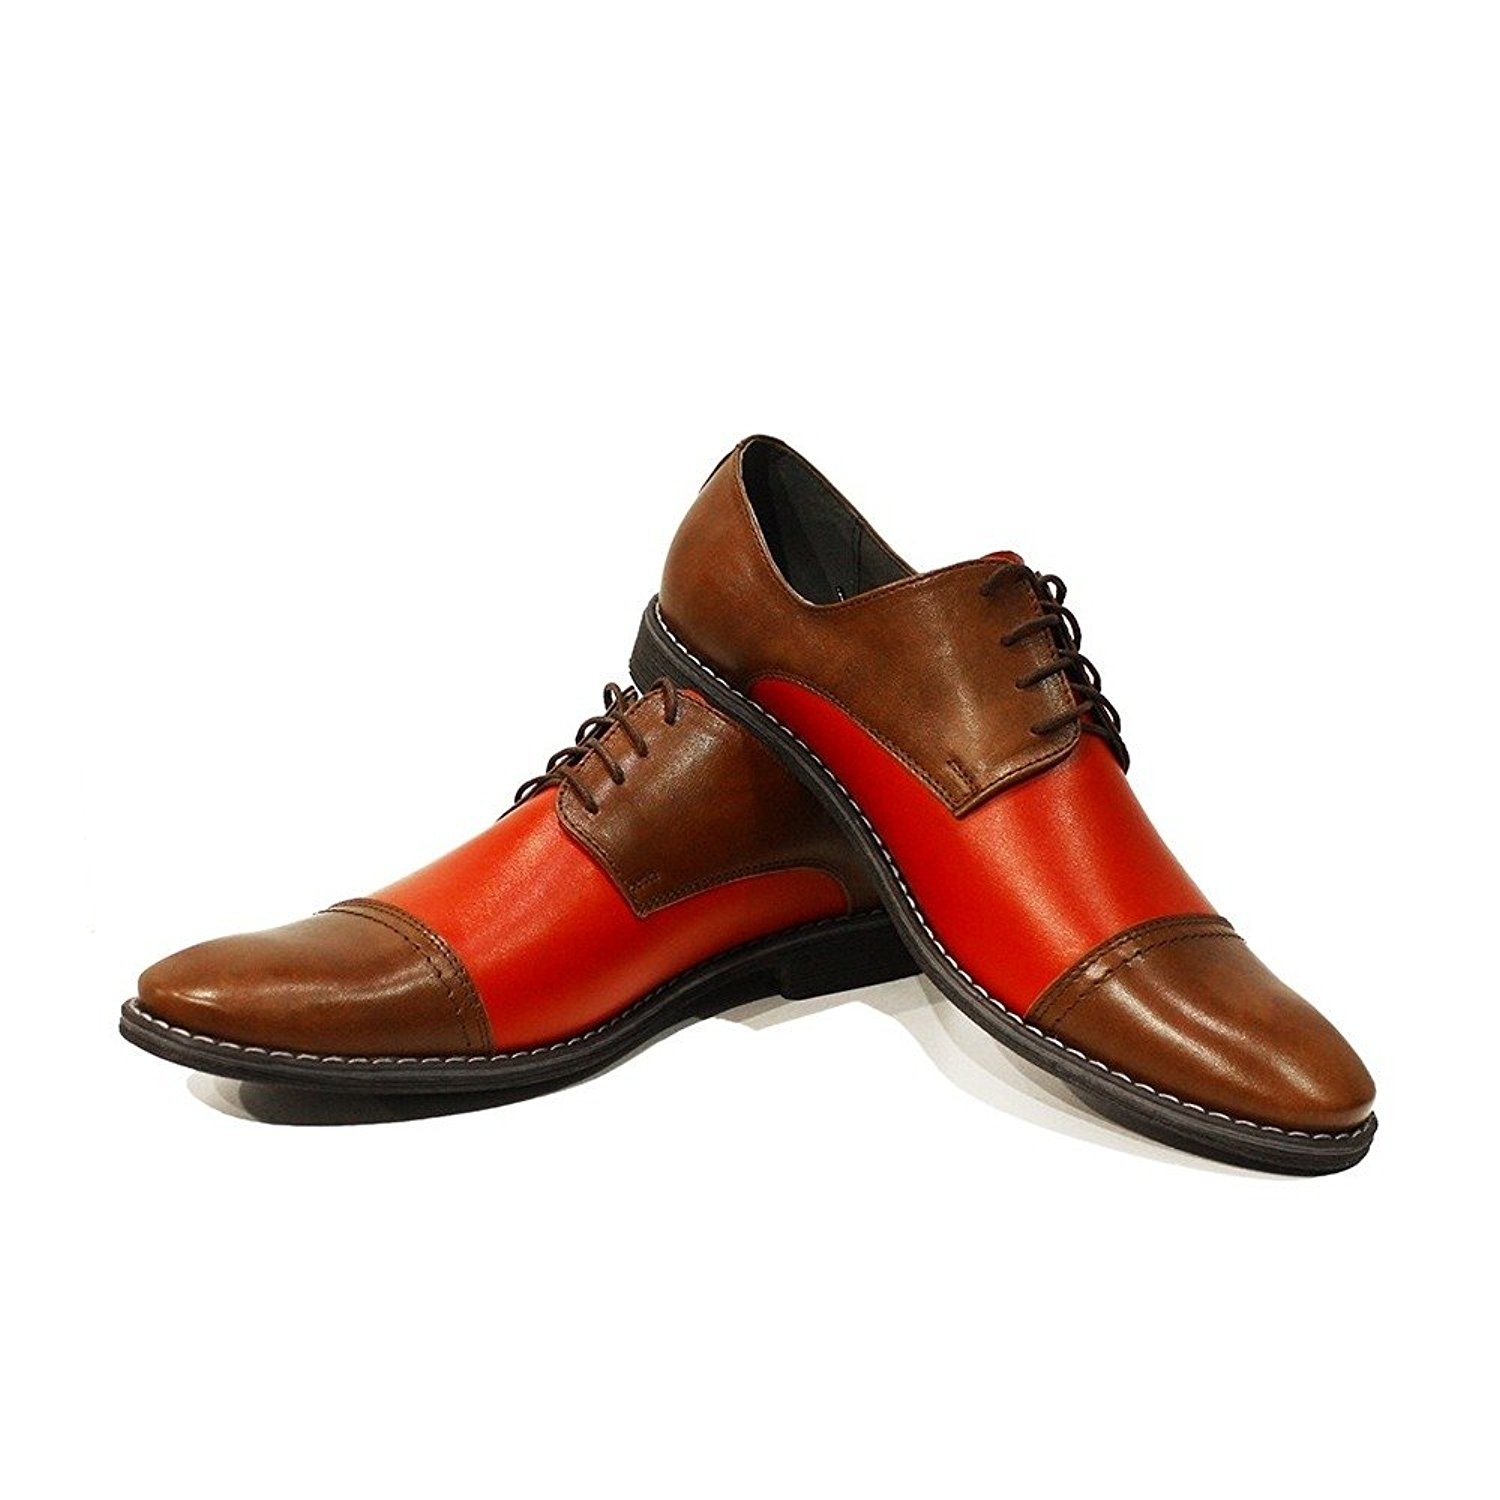 Modello Elia - Handmade Italian Mens Red Oxfords Dress Shoes - Cowhide Smooth Leather - Lace-up